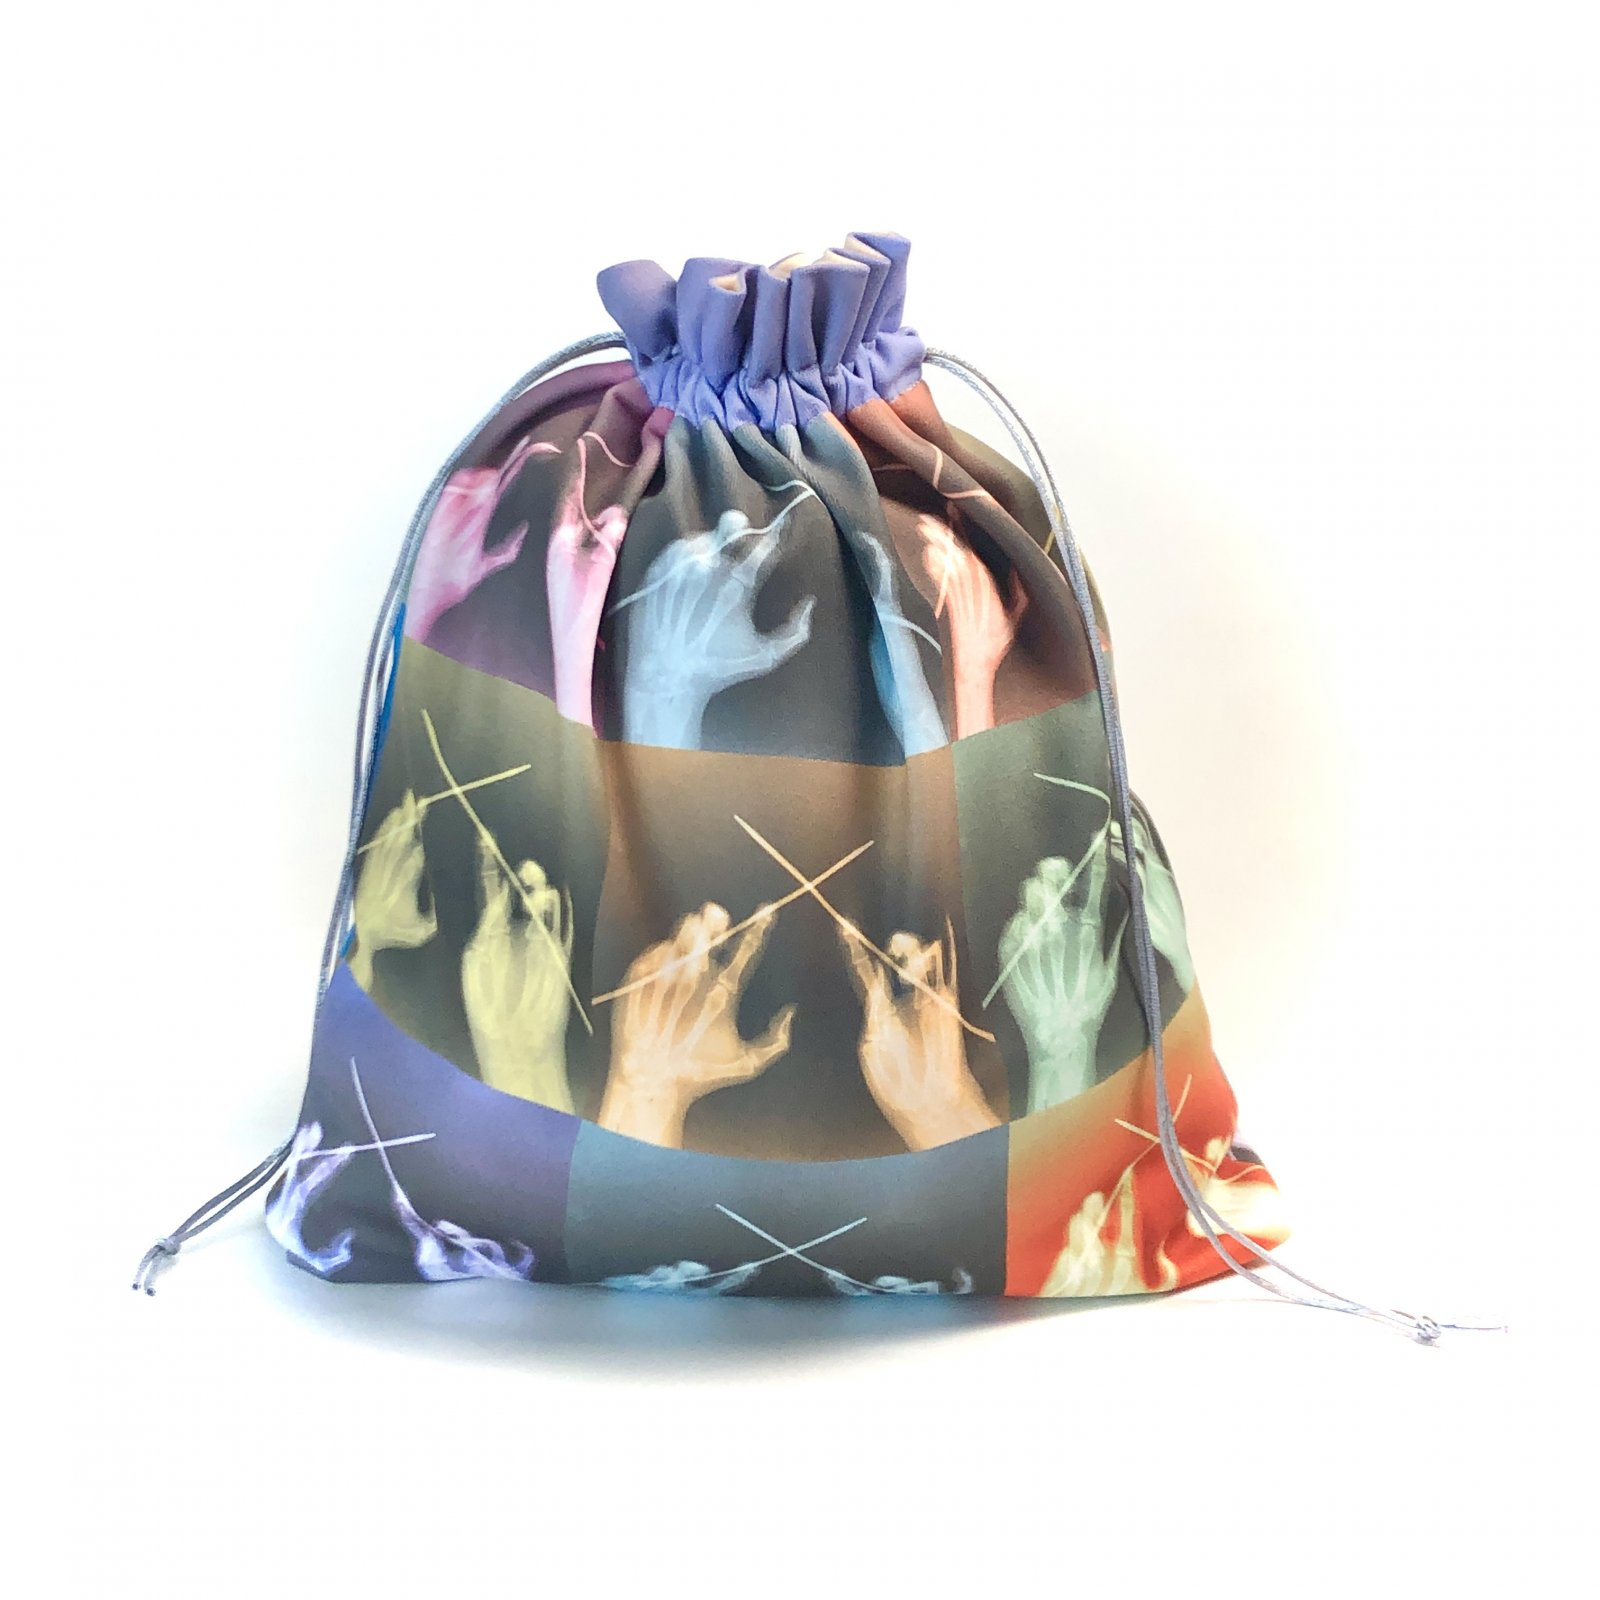 X-ray Knits in Color - Makers' Exclusive Drawstring Project Bag